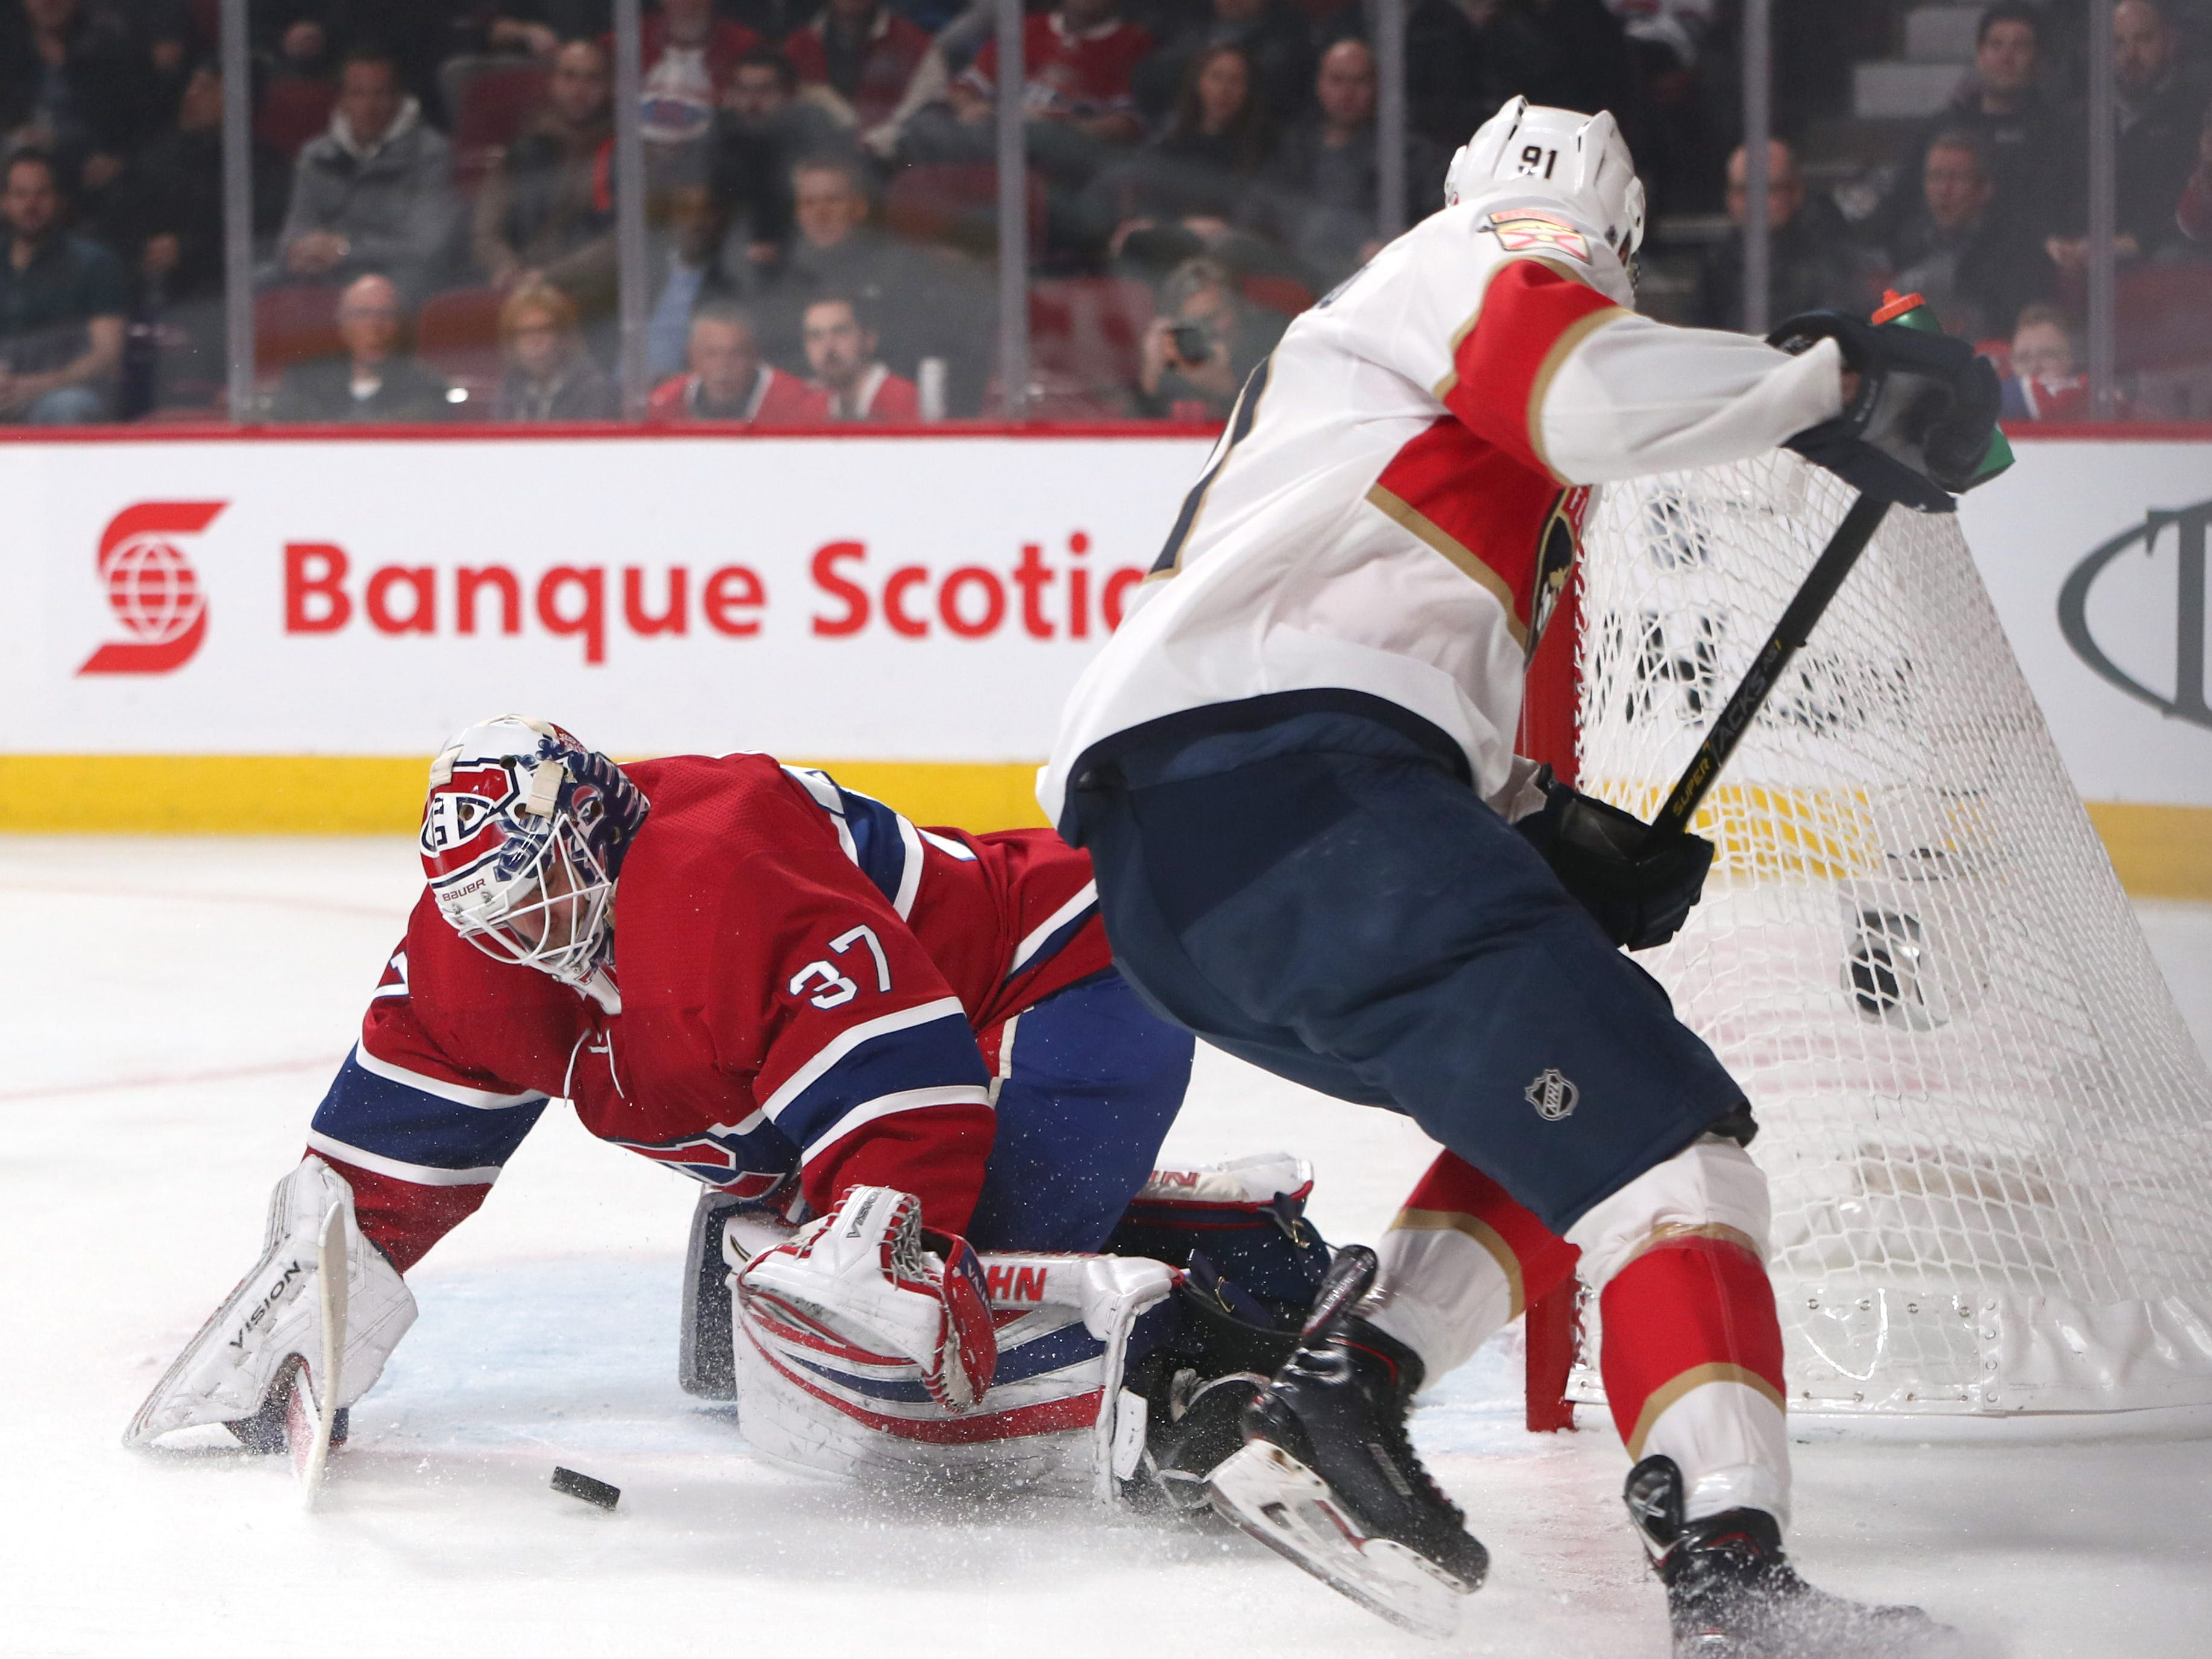 Jan. 15. Montreal Canadiens goaltender Antti Niemi makes a save against Florida Panthers right wing Juho Lammikko. He made 52 saves in the 5-1 Montreal win.